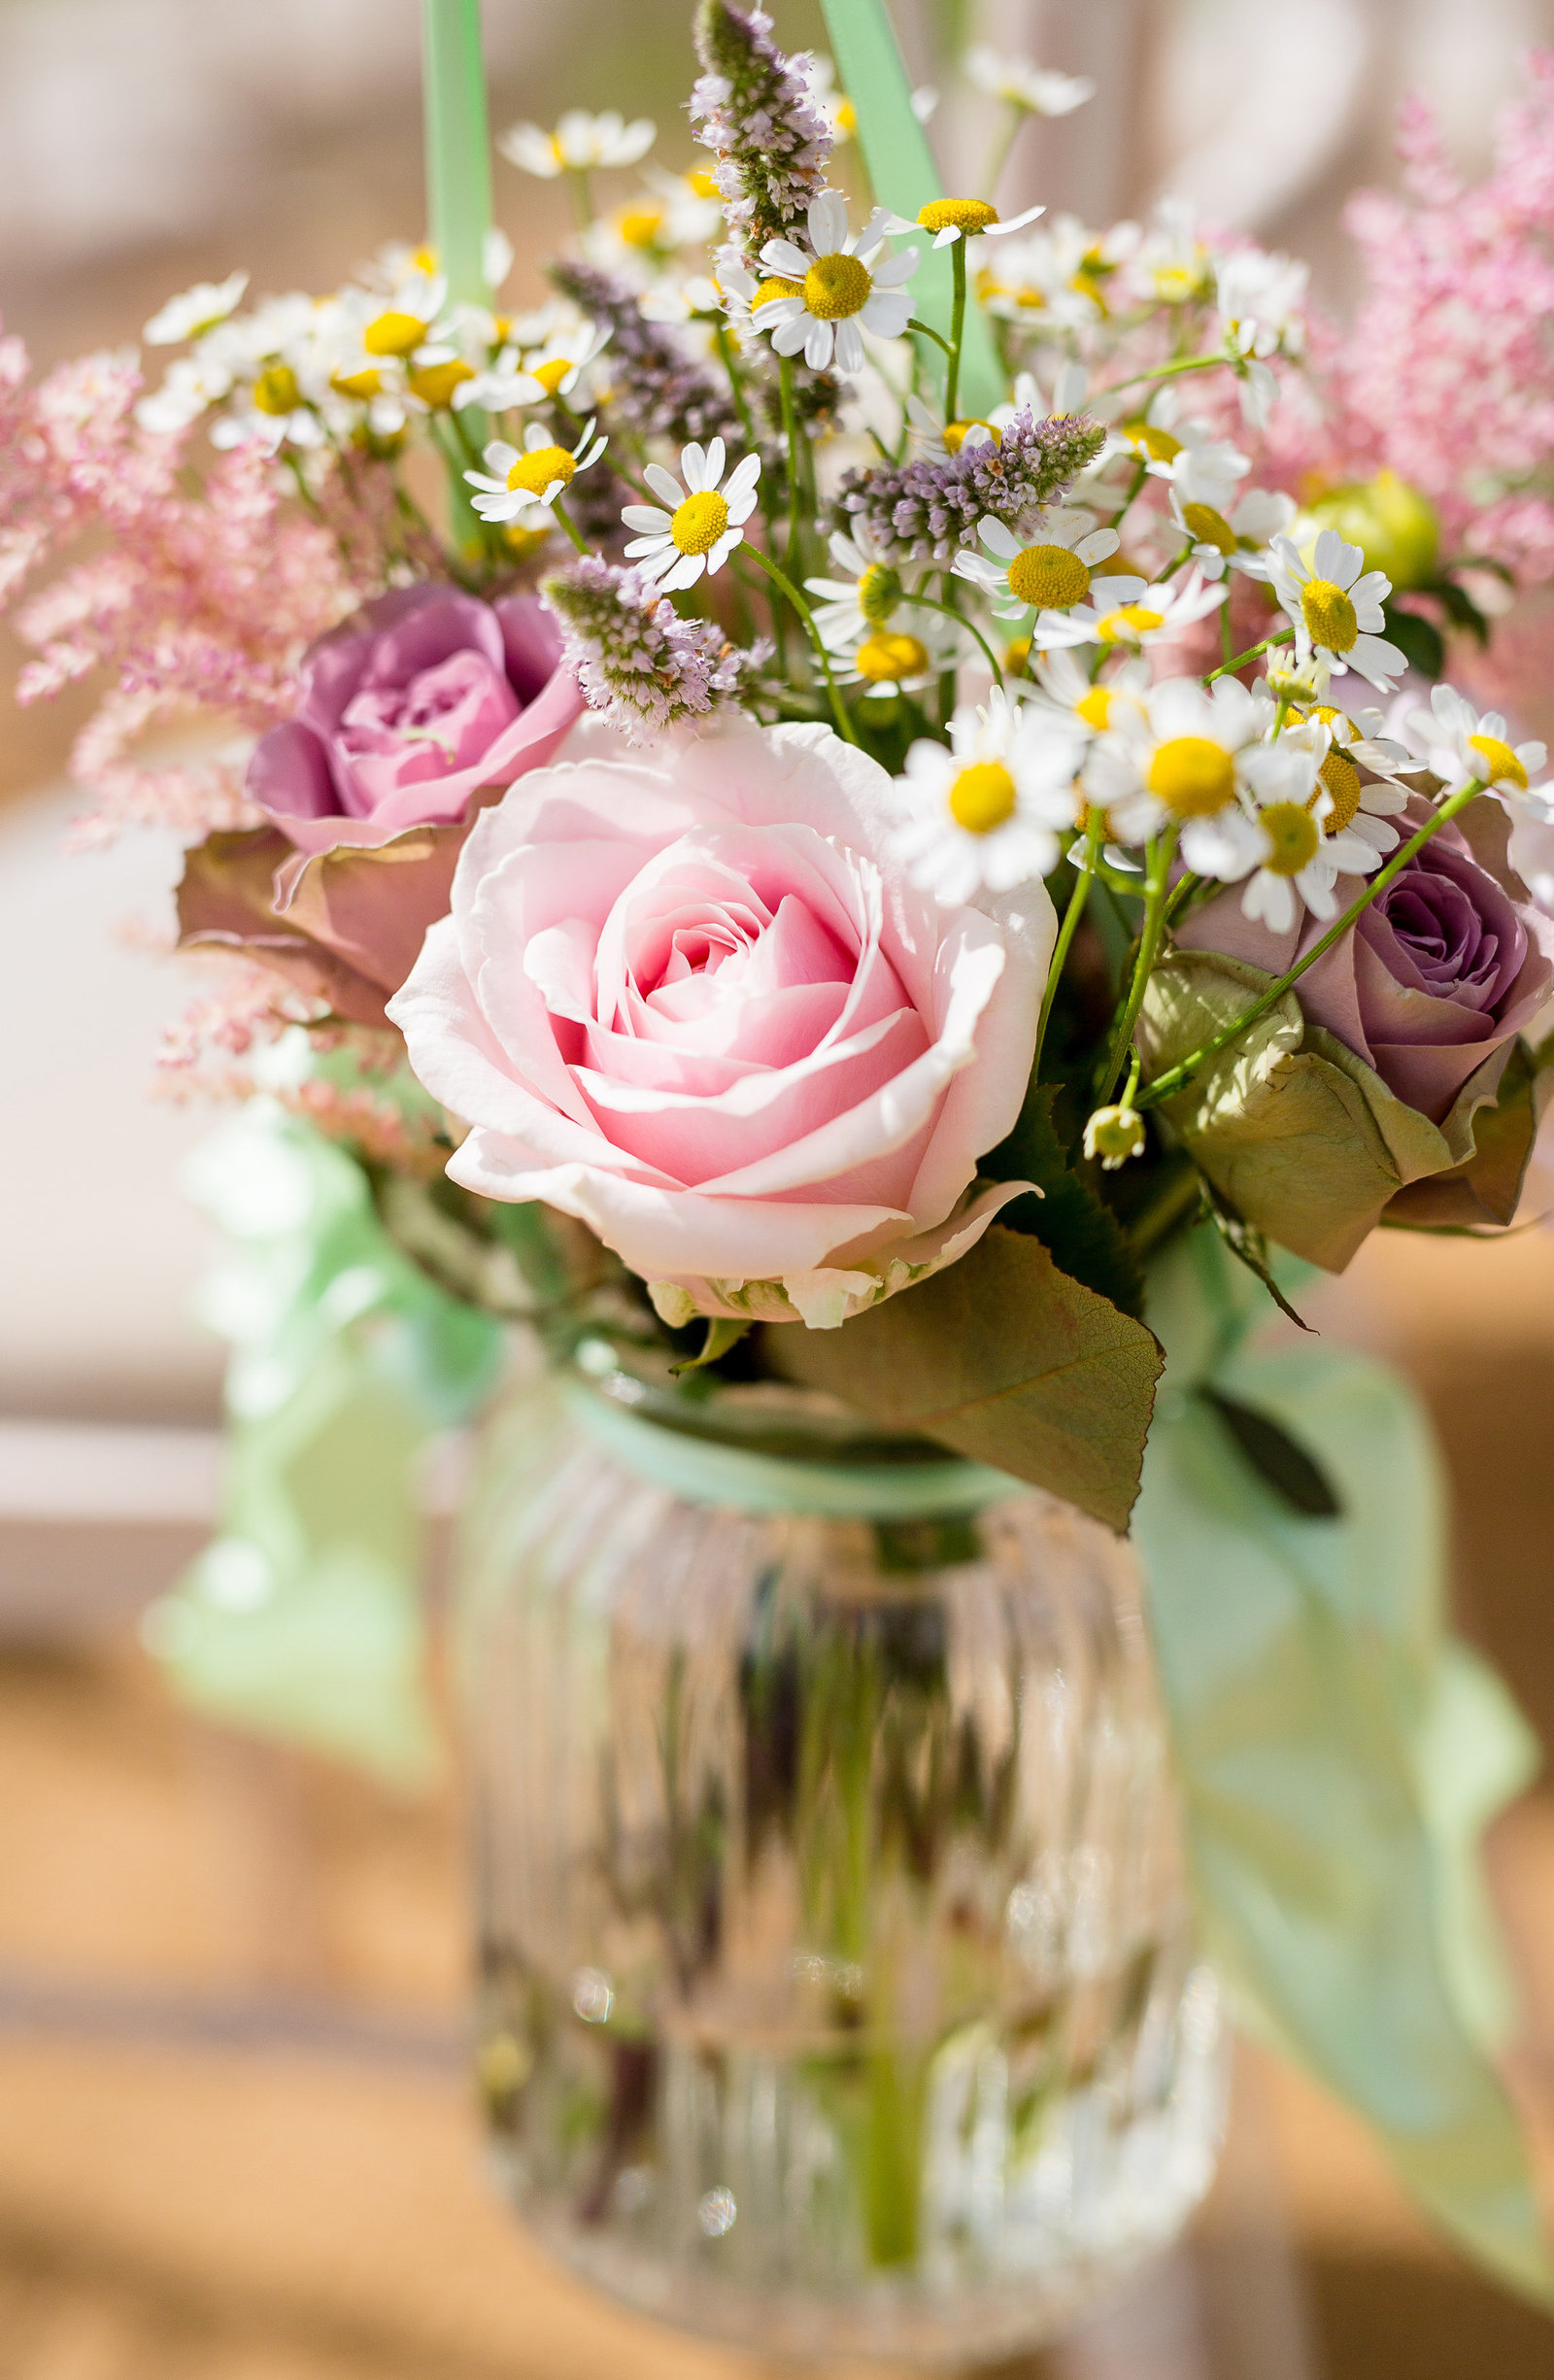 On a budget beautiful roses and flowers and daisies in a jar with a ribbon for pew ends during a wedding ceremony